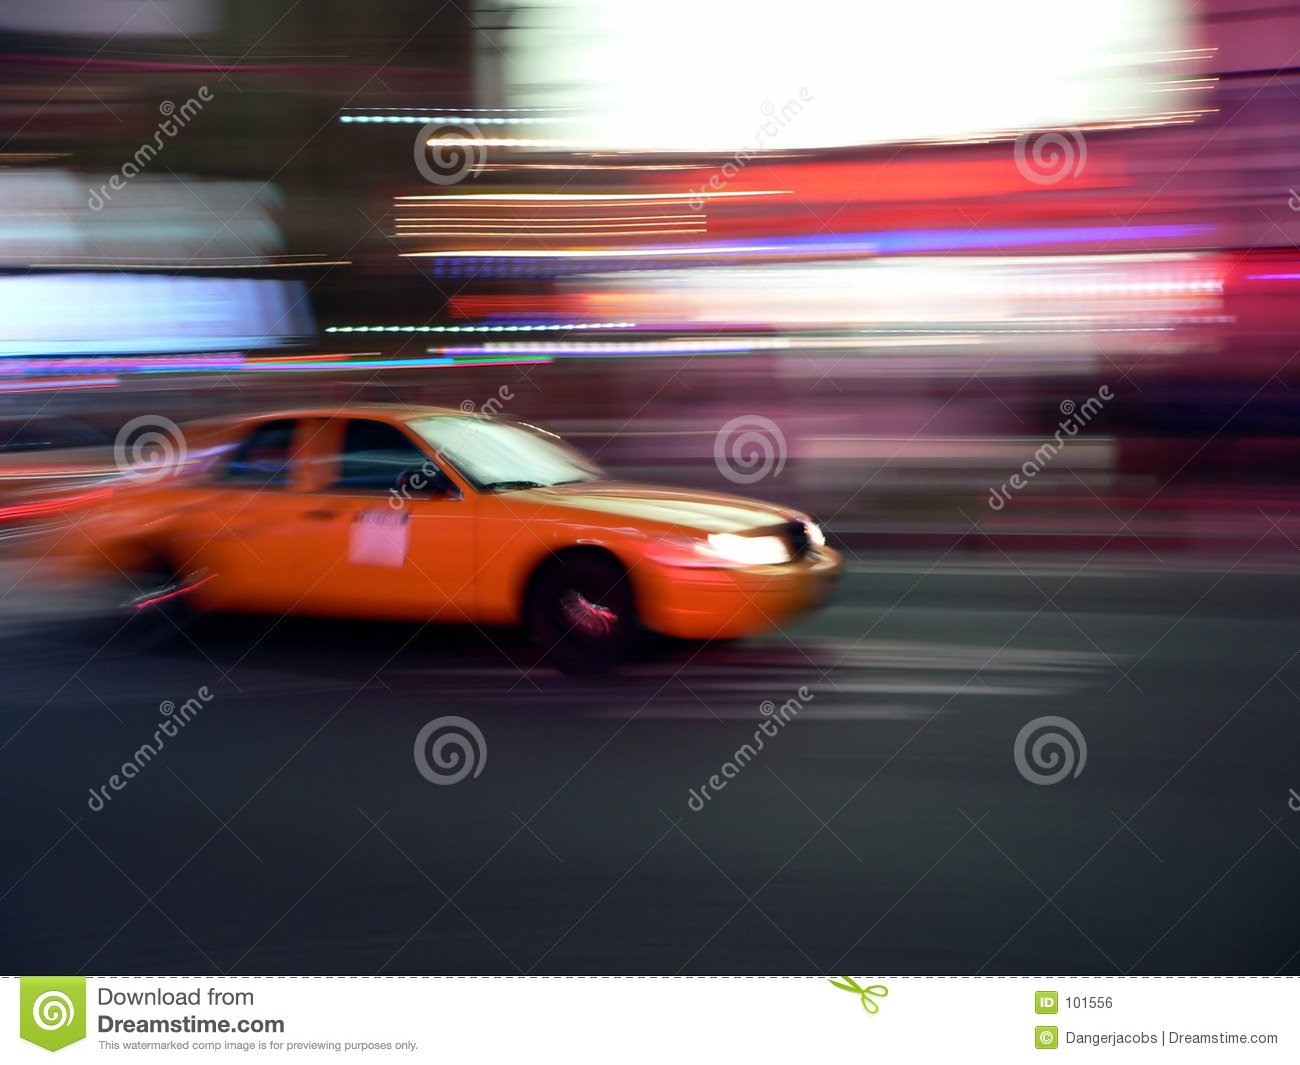 Speeds streets taxi